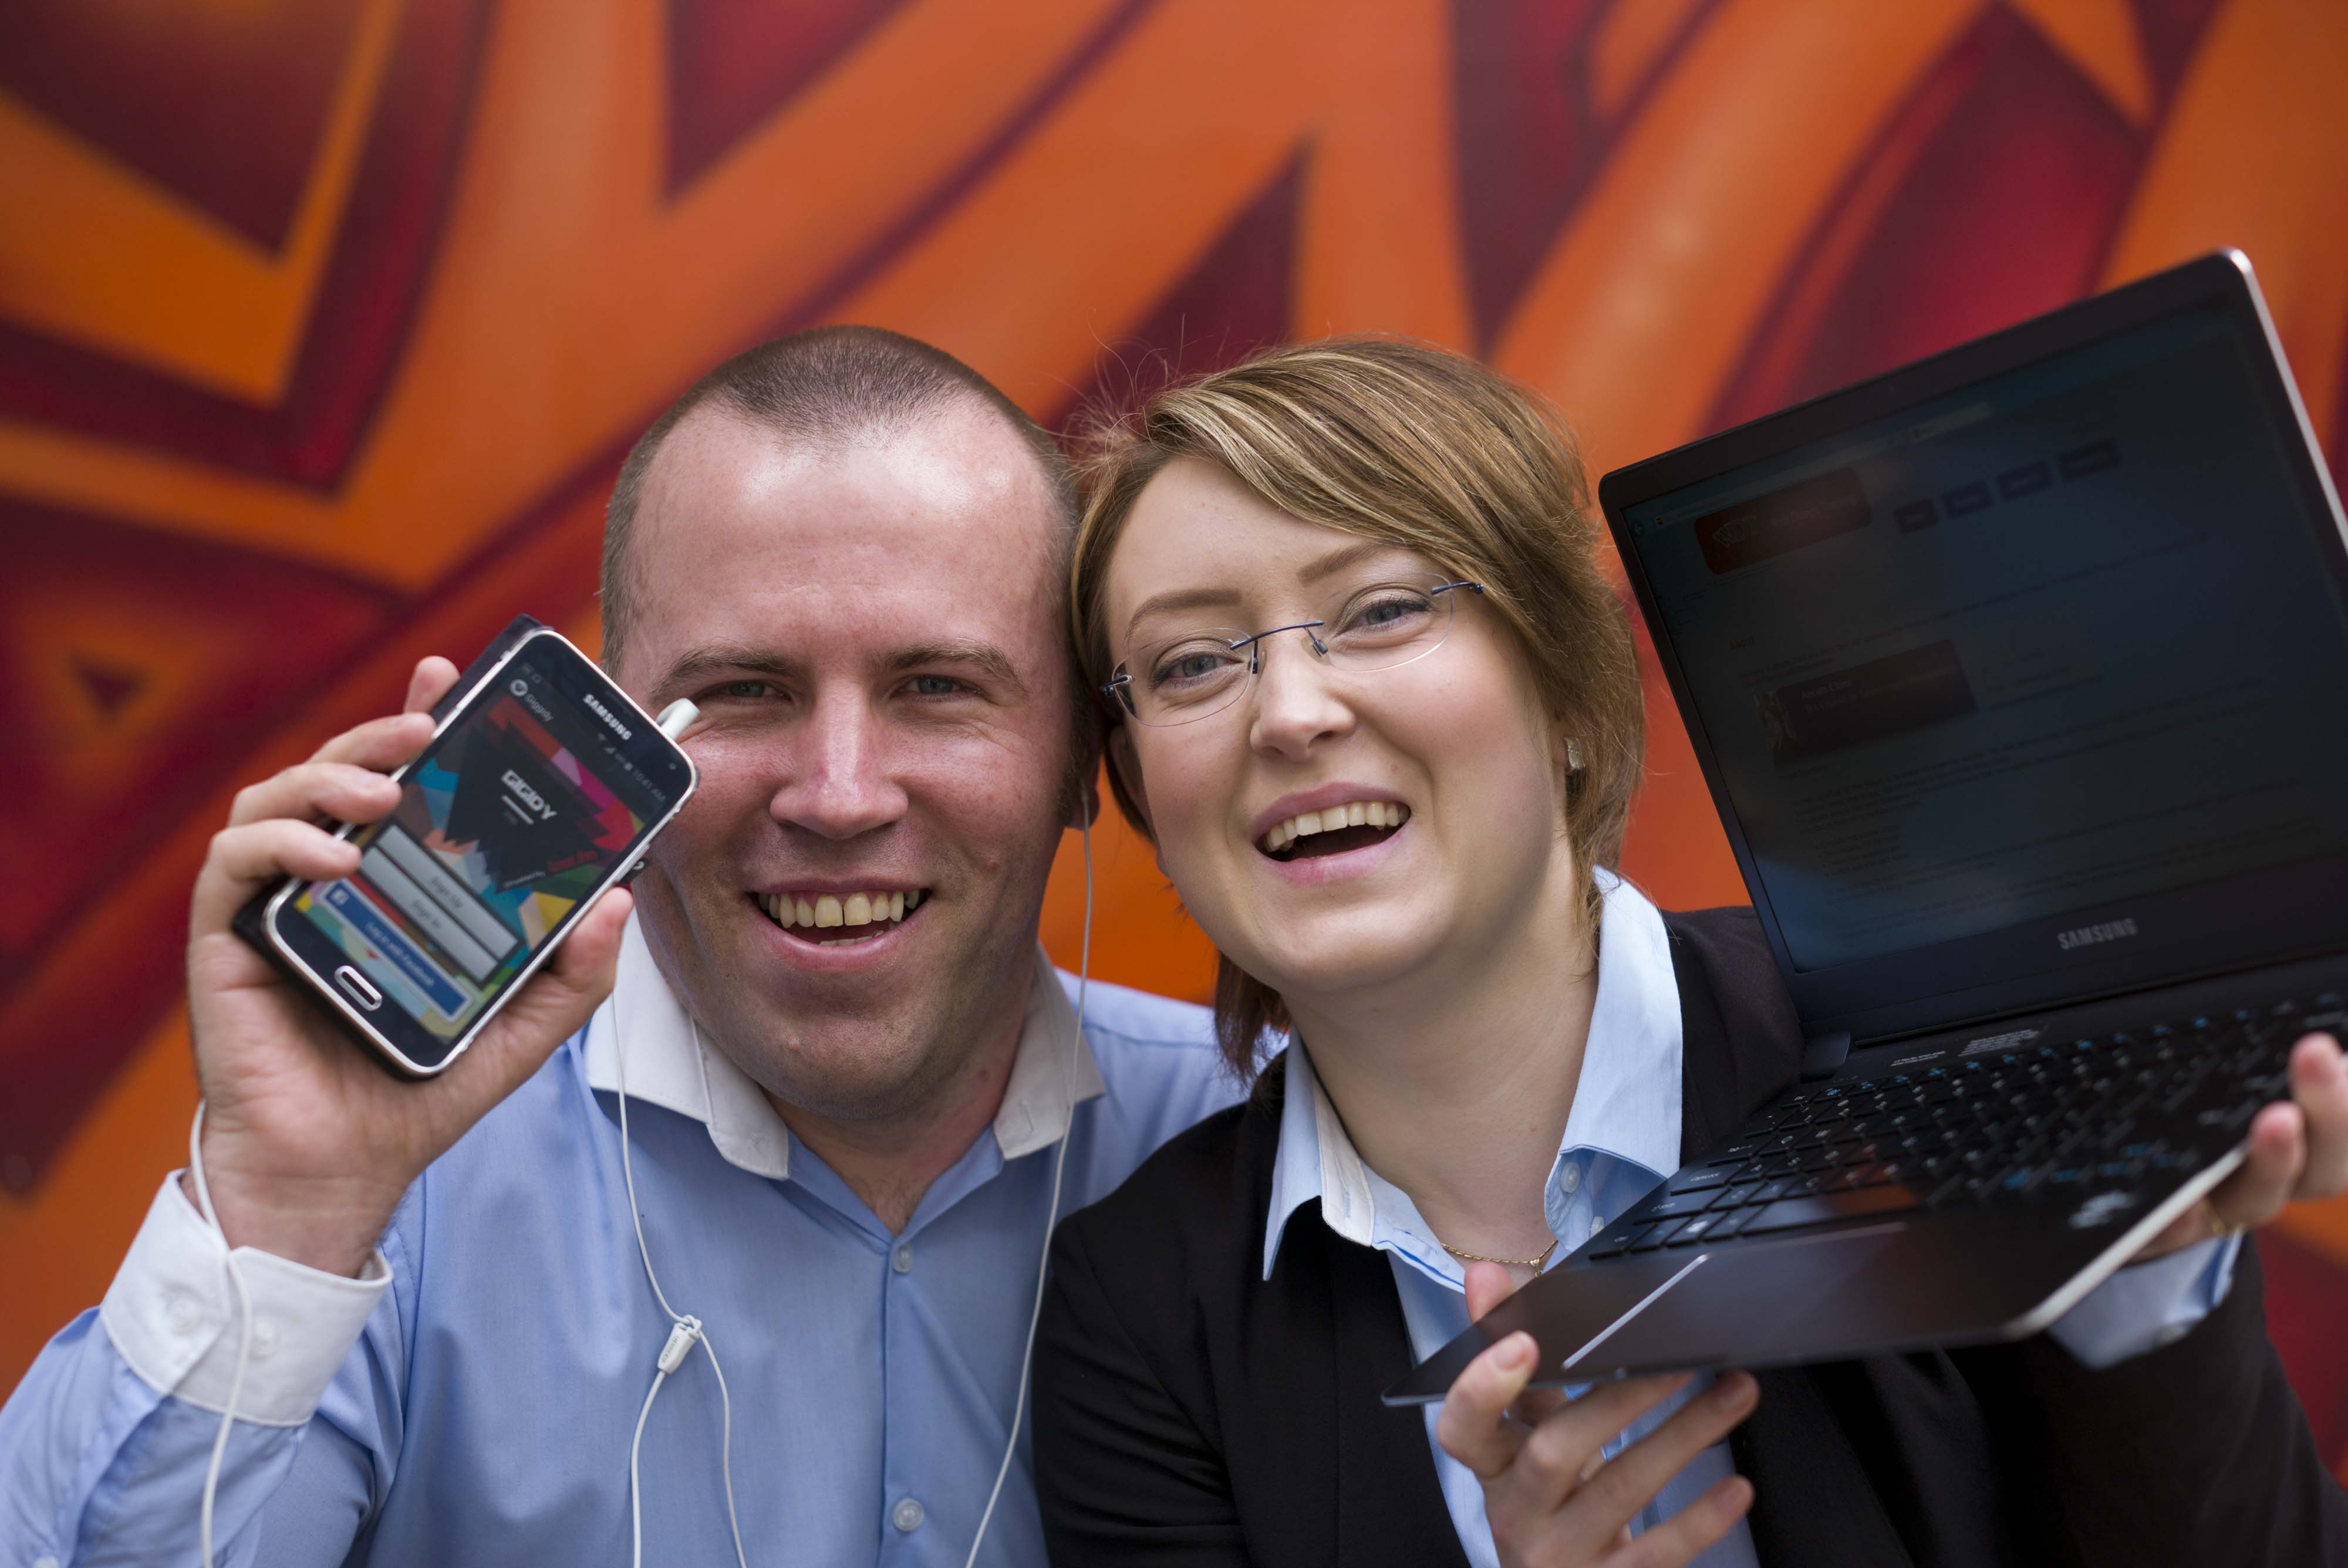 Tech_Talent_Booming_at_NCI_Student_Showcase_3